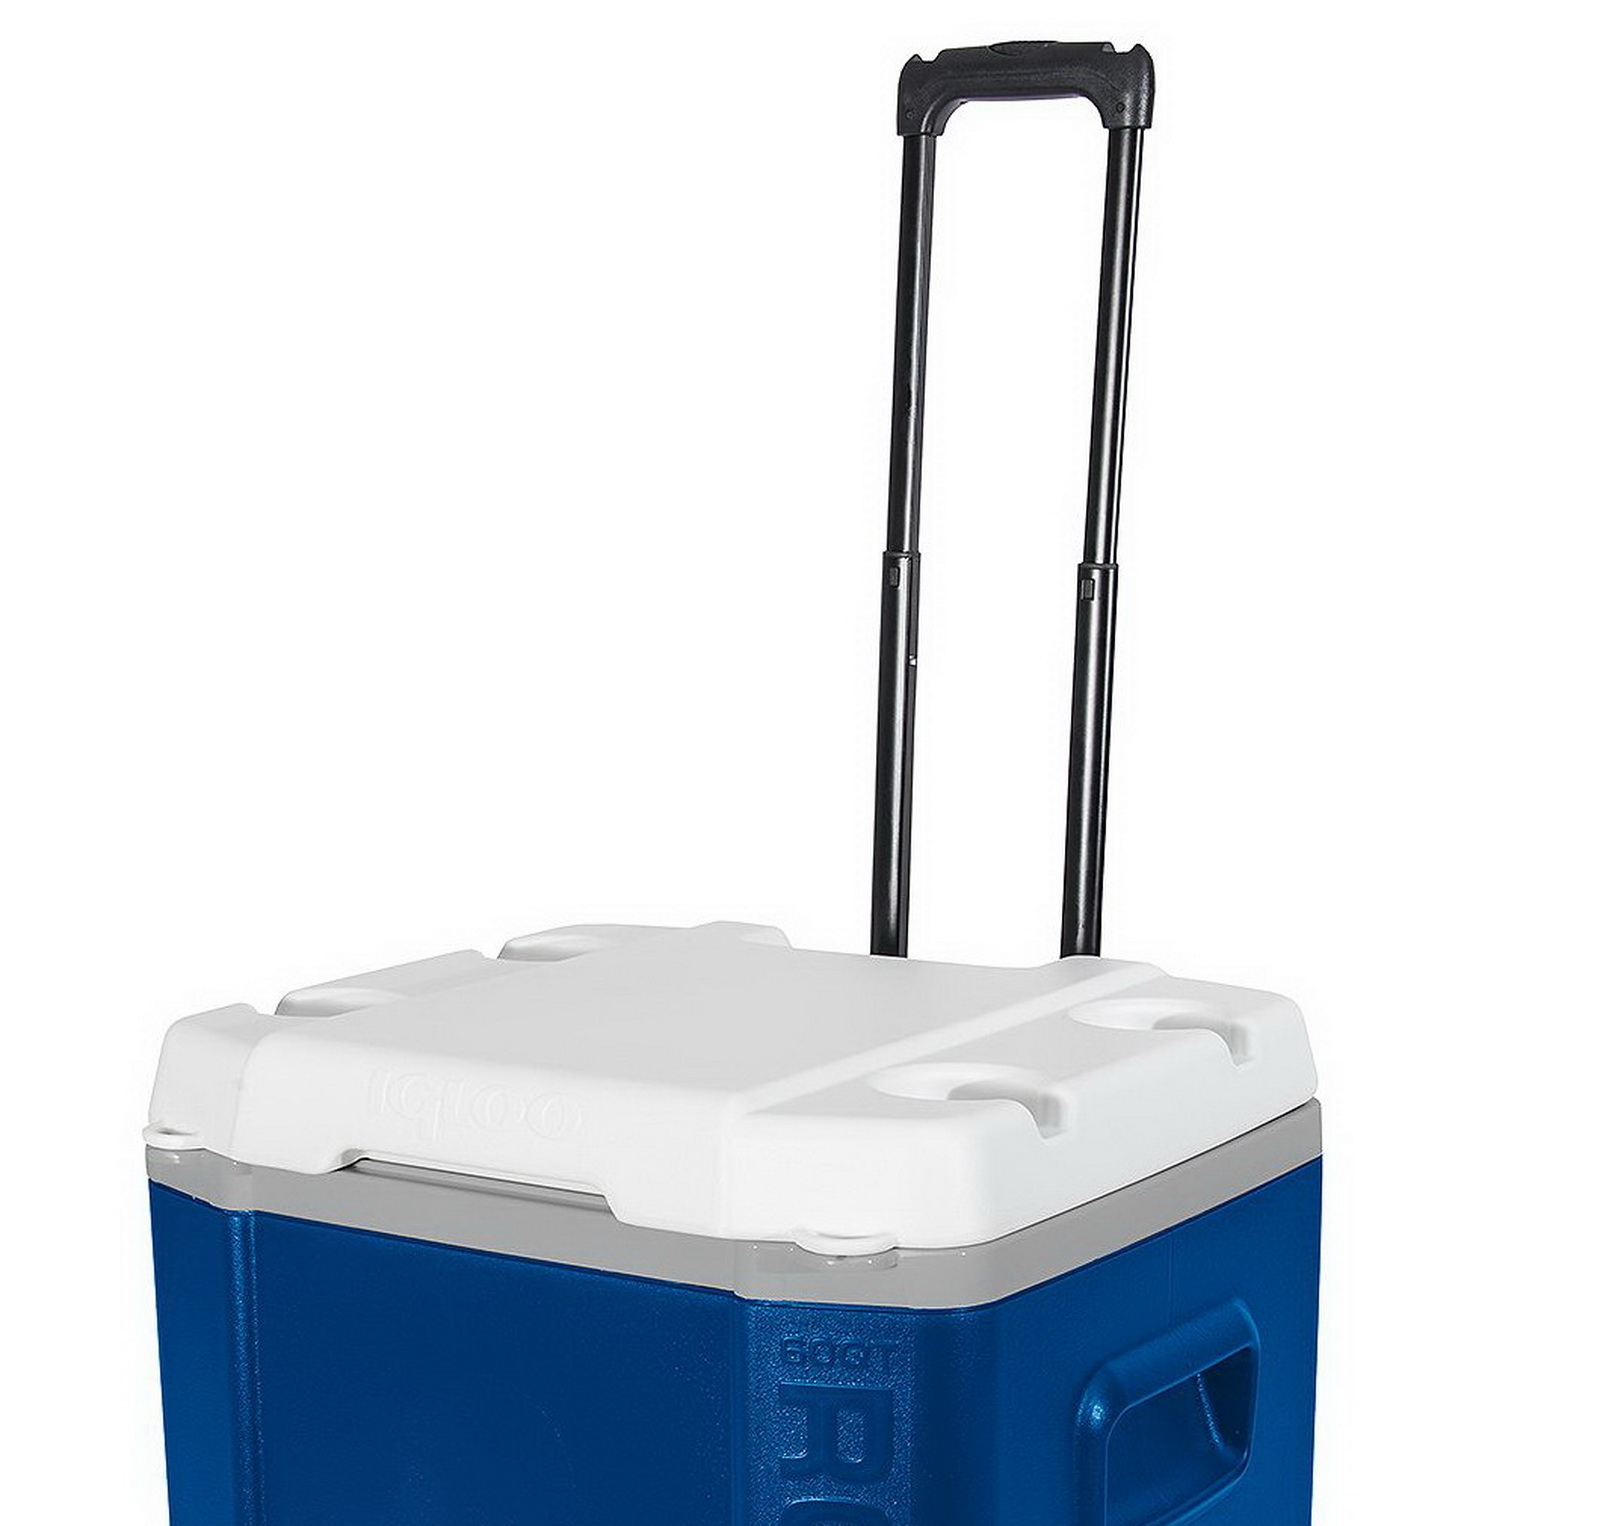 igloo cooler 60 quart large capacity roller rolling ice chest